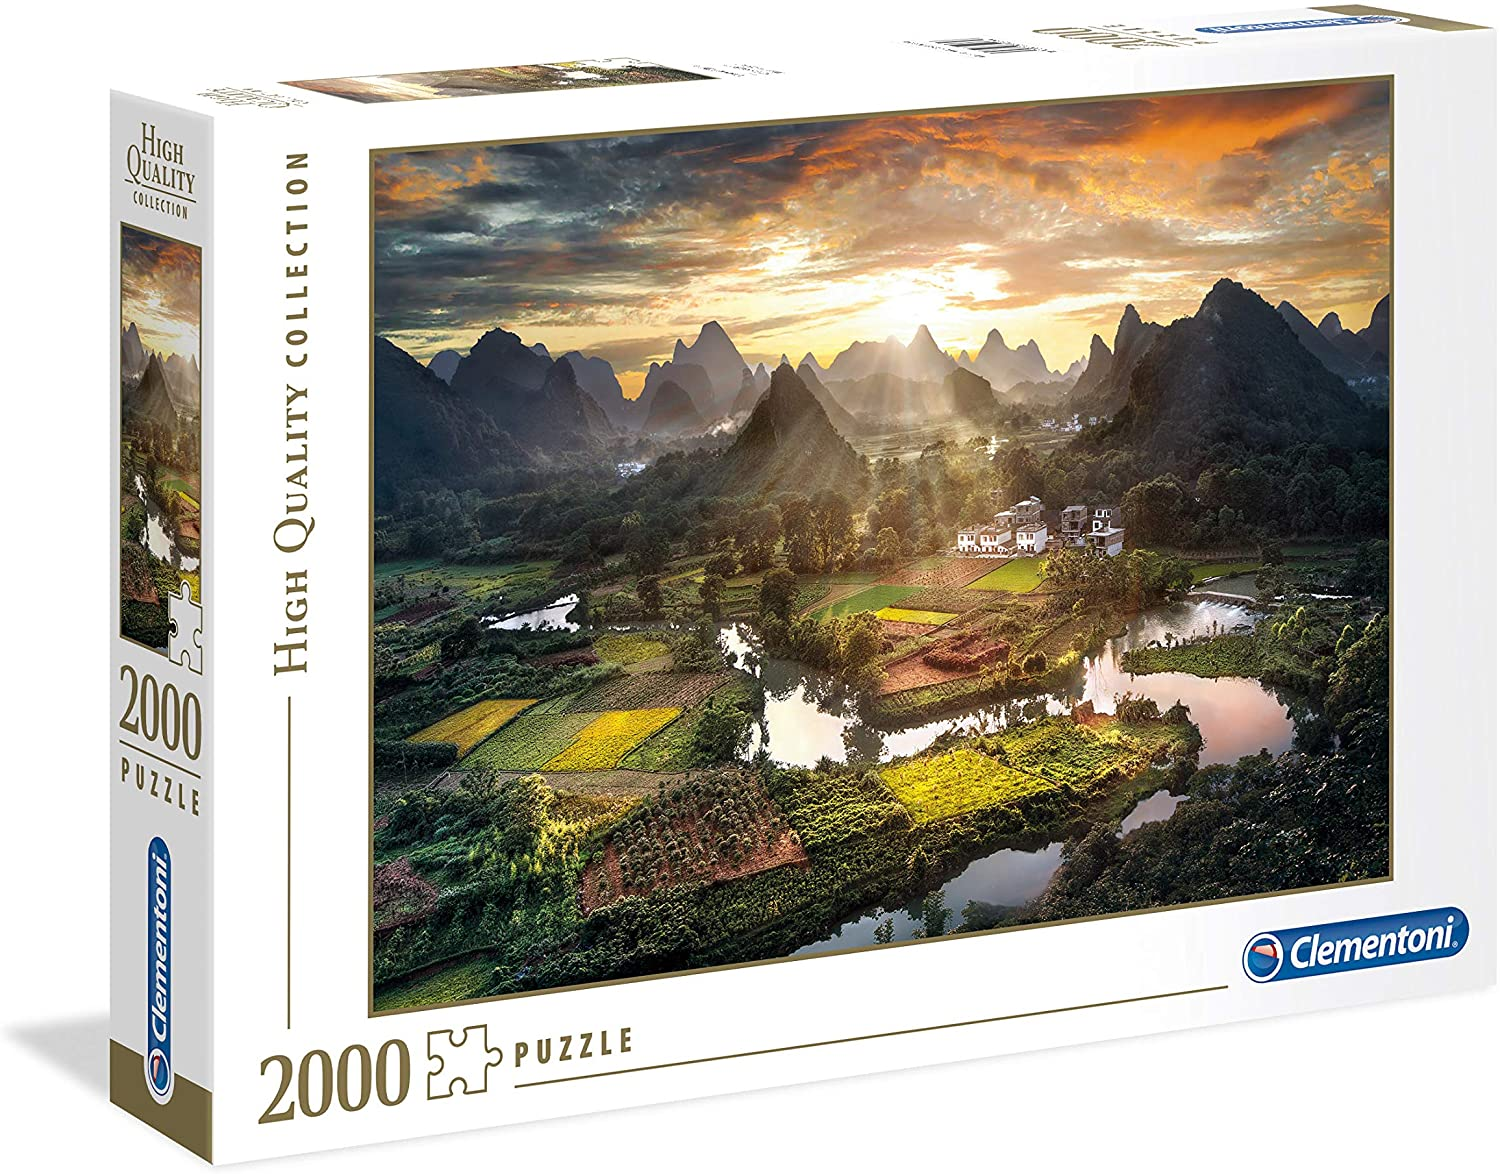 PUZZLE 2000 HQC VIEW OF CHINA 32564